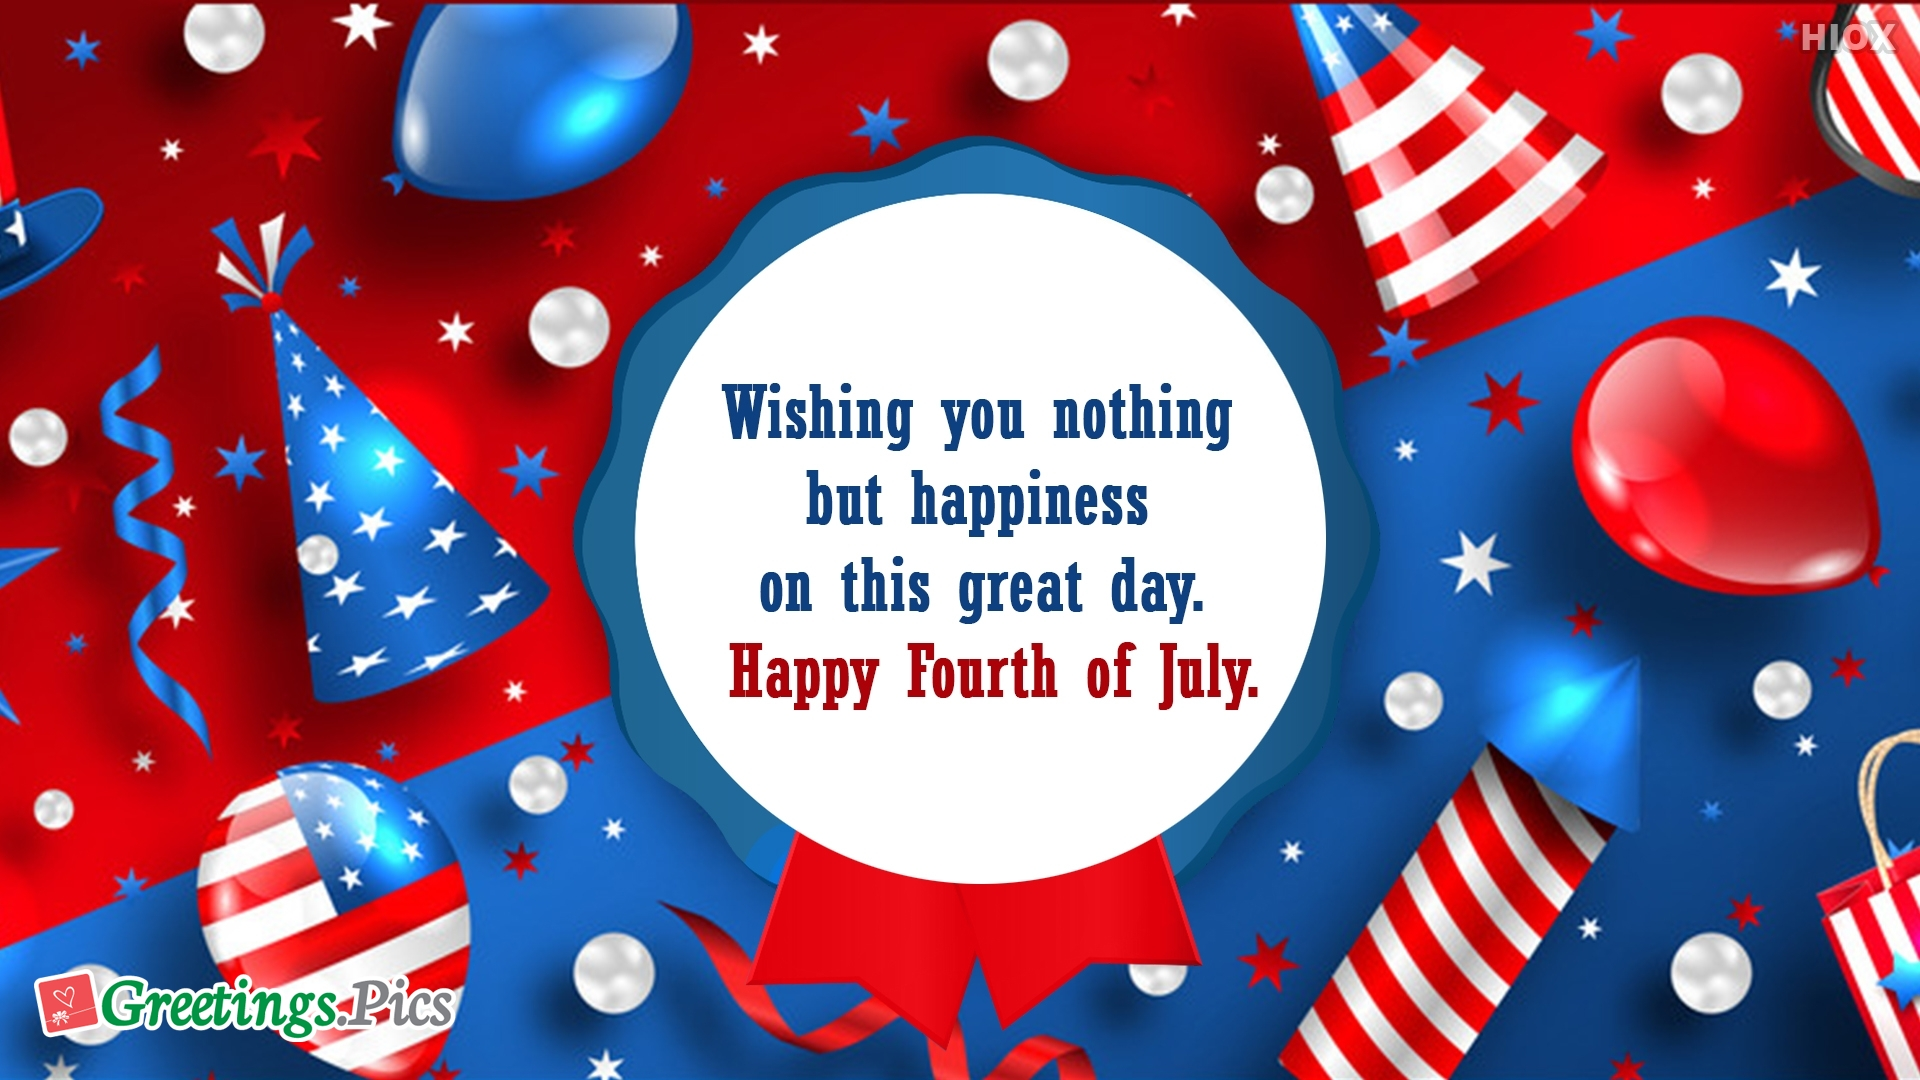 Wishing You Nothing But Happiness On This Great Day. Happy Fourth Of July.